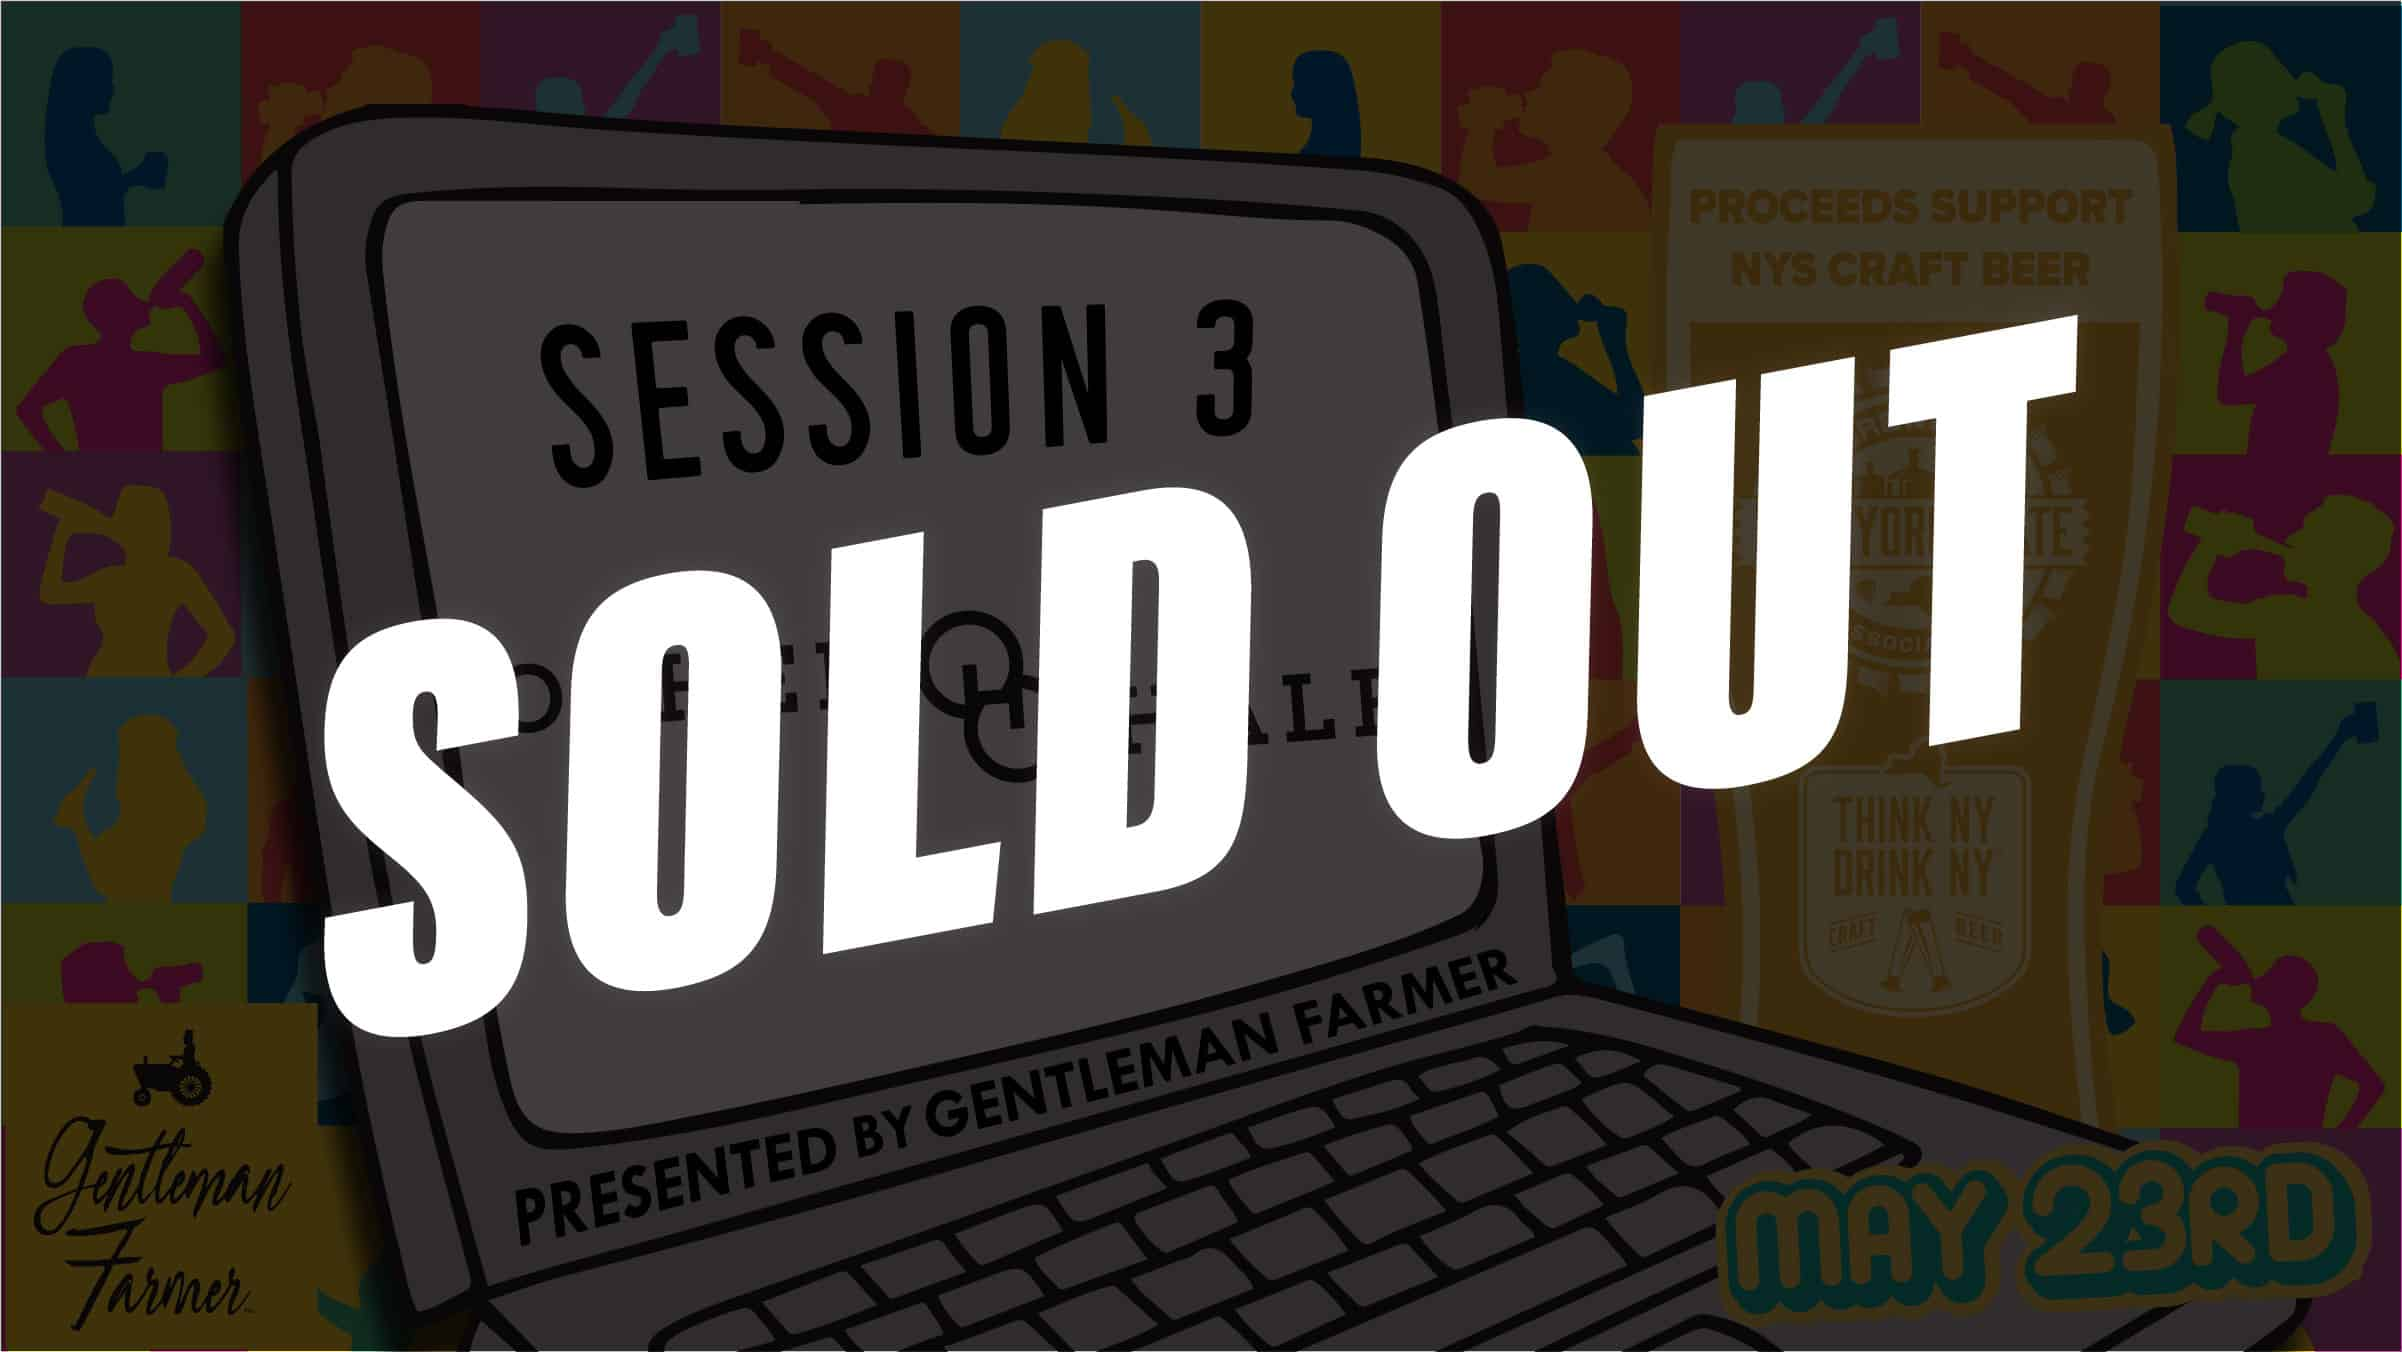 VTE_Session 3_16x9_SOLD OUT